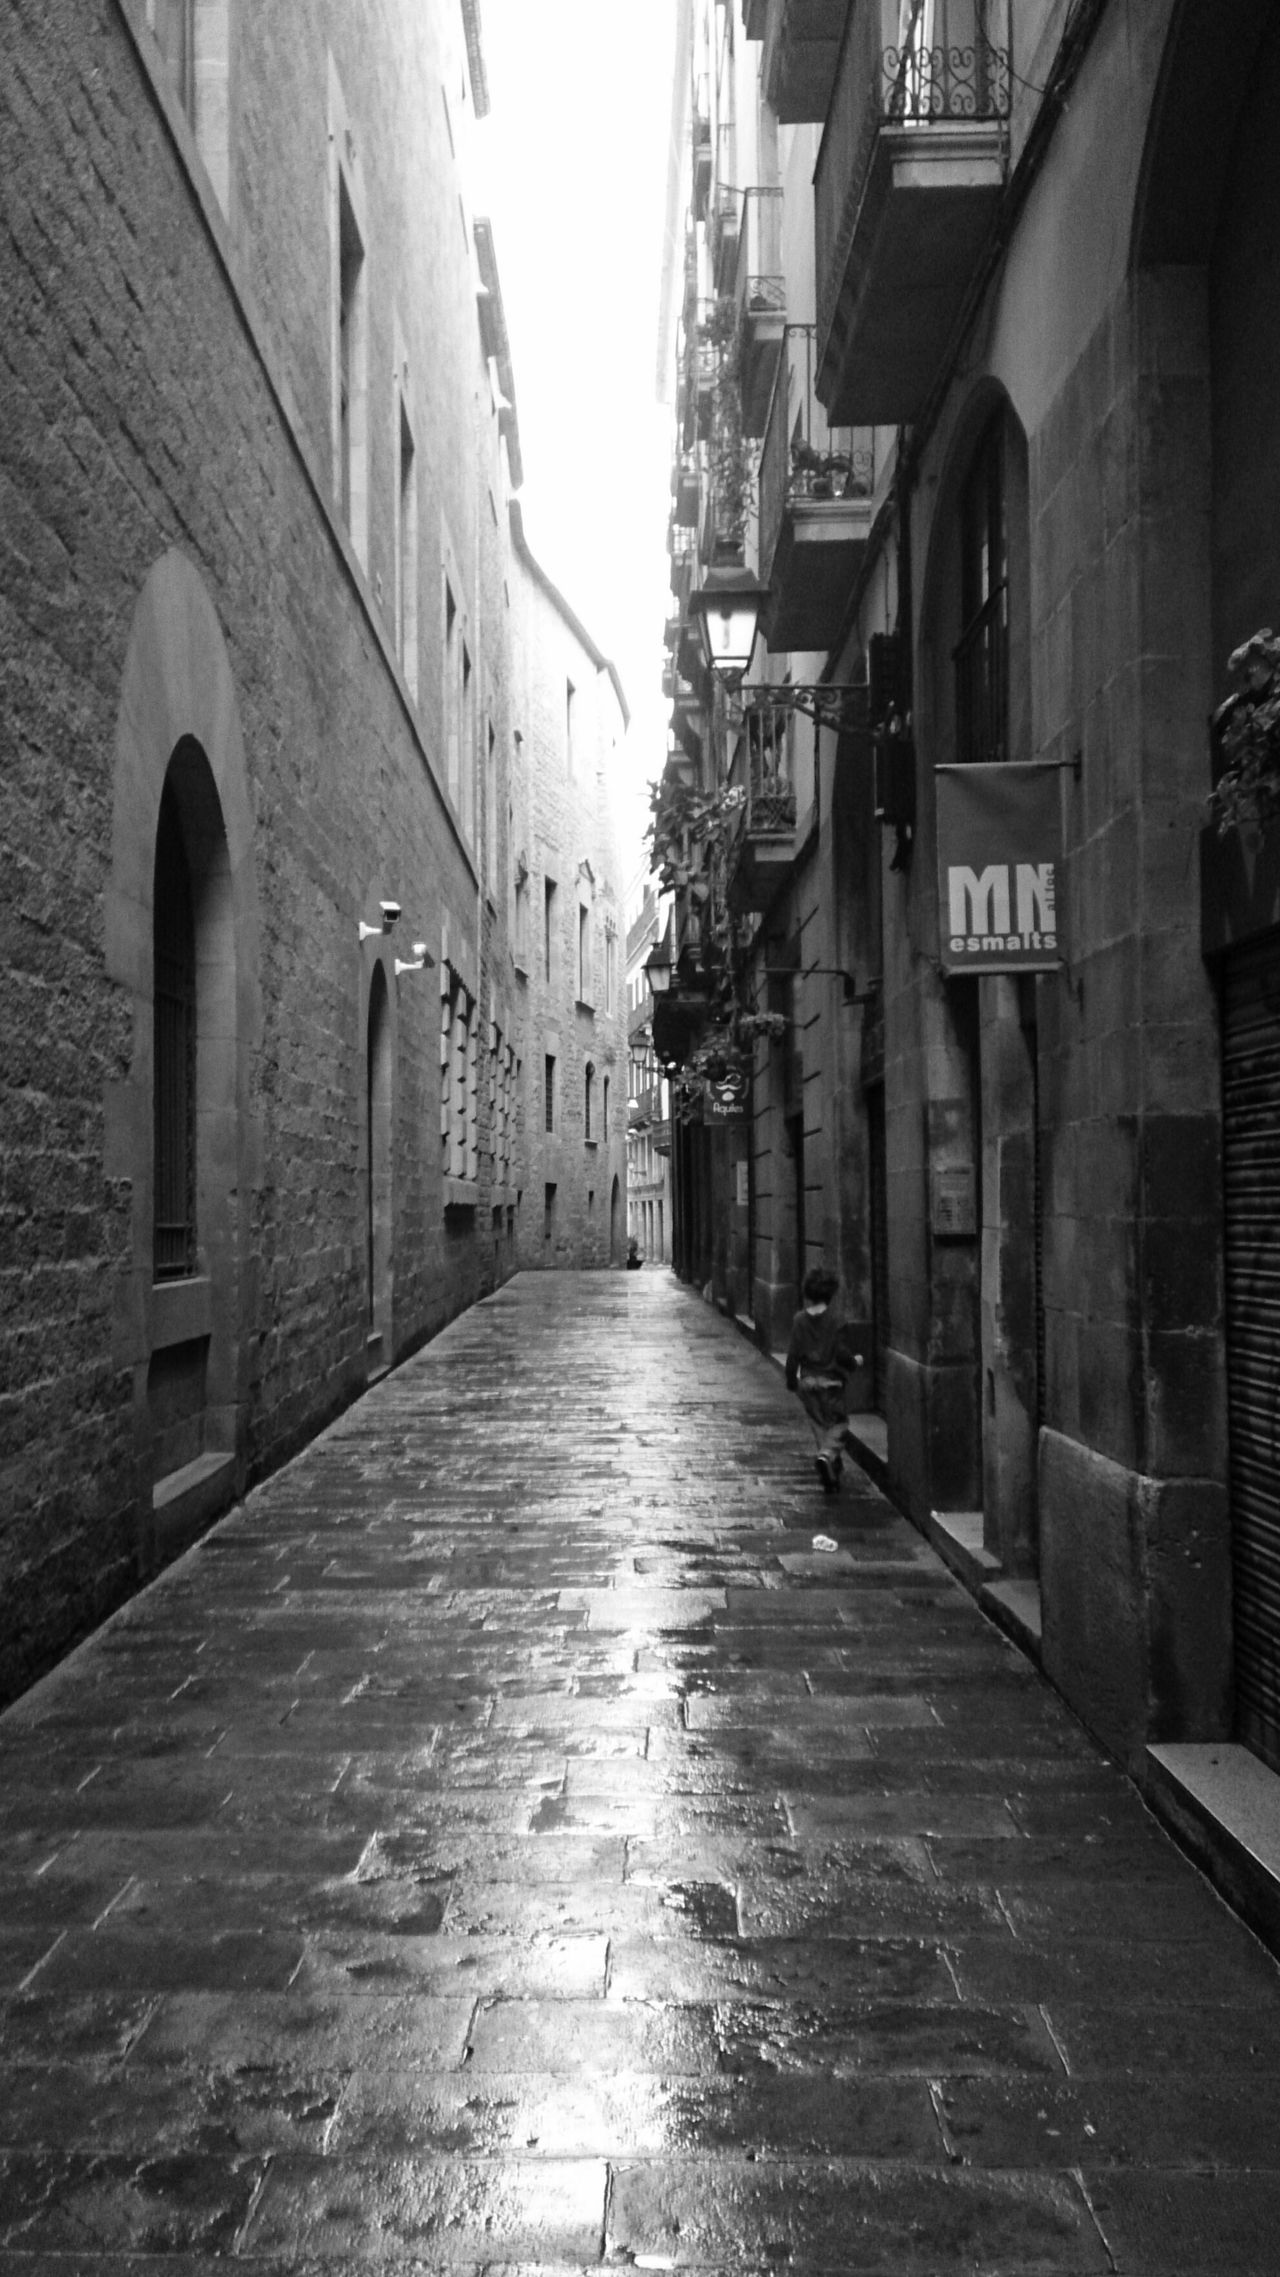 Old Street at the Gothic Quarter , Barcelona . Mobilephotography Mobile Photography Sony Xperia Zr Old Kid Walking Alone Street Photography Street Streetphotography Tourist Destination Tourist Attraction  Gothic Architecture Architecture Narrow Street Architecture Photography Black And White Black And White Photography Perspective Showcase July